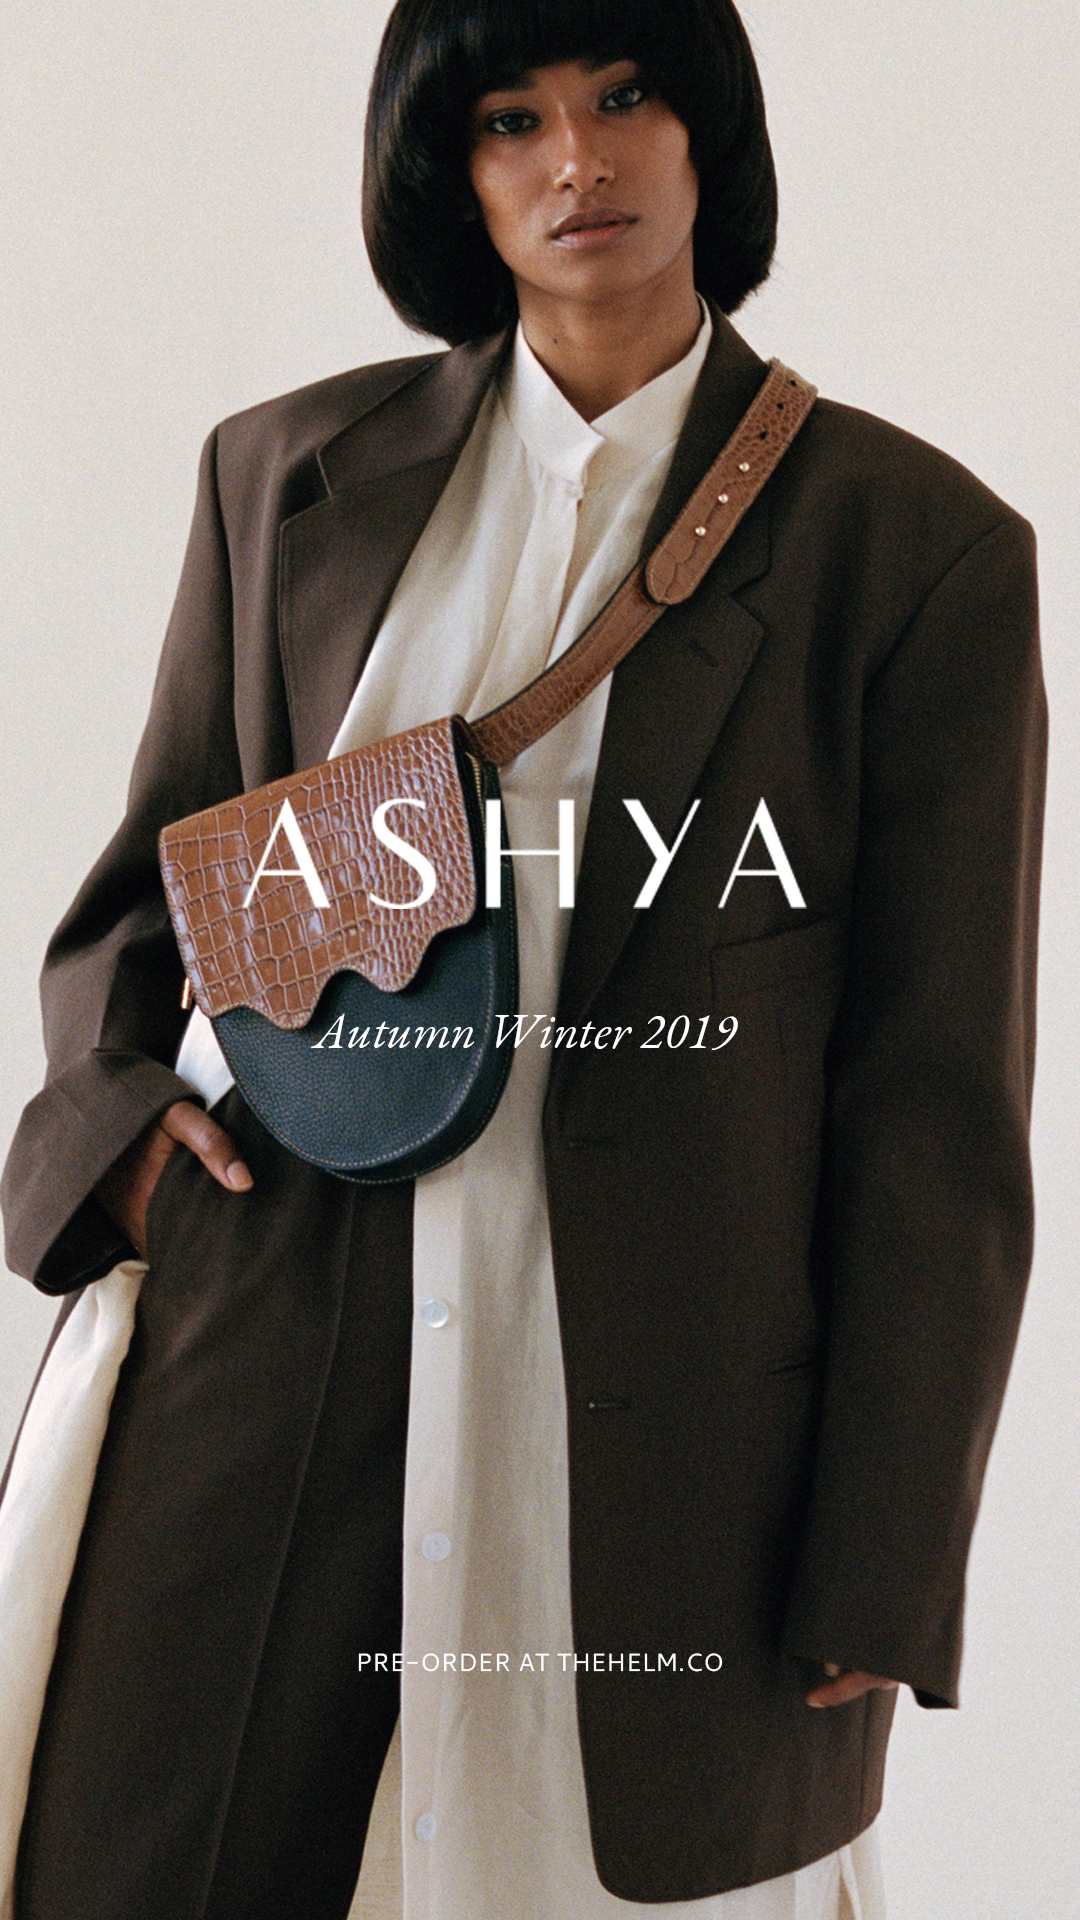 AW19_ASHYA_PRE-ORDER_IG STORY_THE HELM_2.jpg